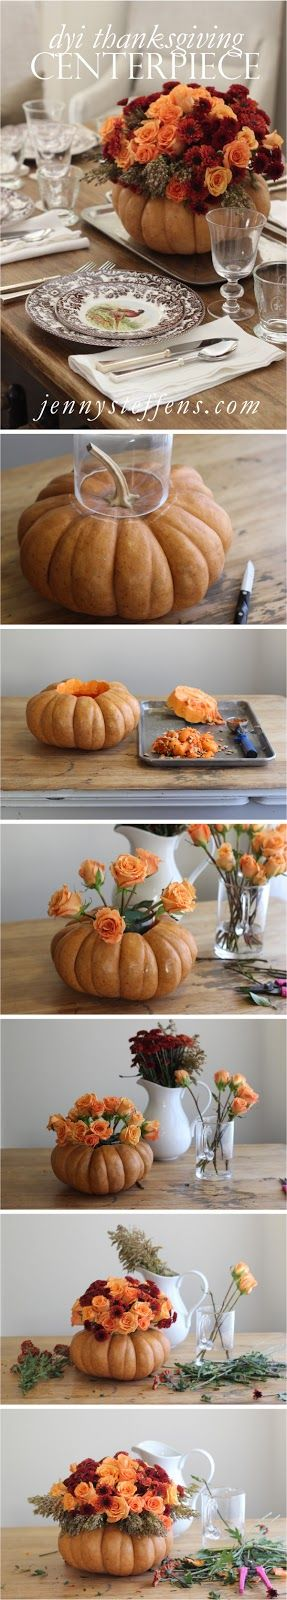 DIY Step-by-Step Rose & Mum Centerpiece in a Pumpkin for Thanksgiving  Thanksgiving Table Setting & Centerpiece   http://jennysteffens.blogspot.com/2012/11/diy-thanksgiving-centerpiece-roses-mums.html